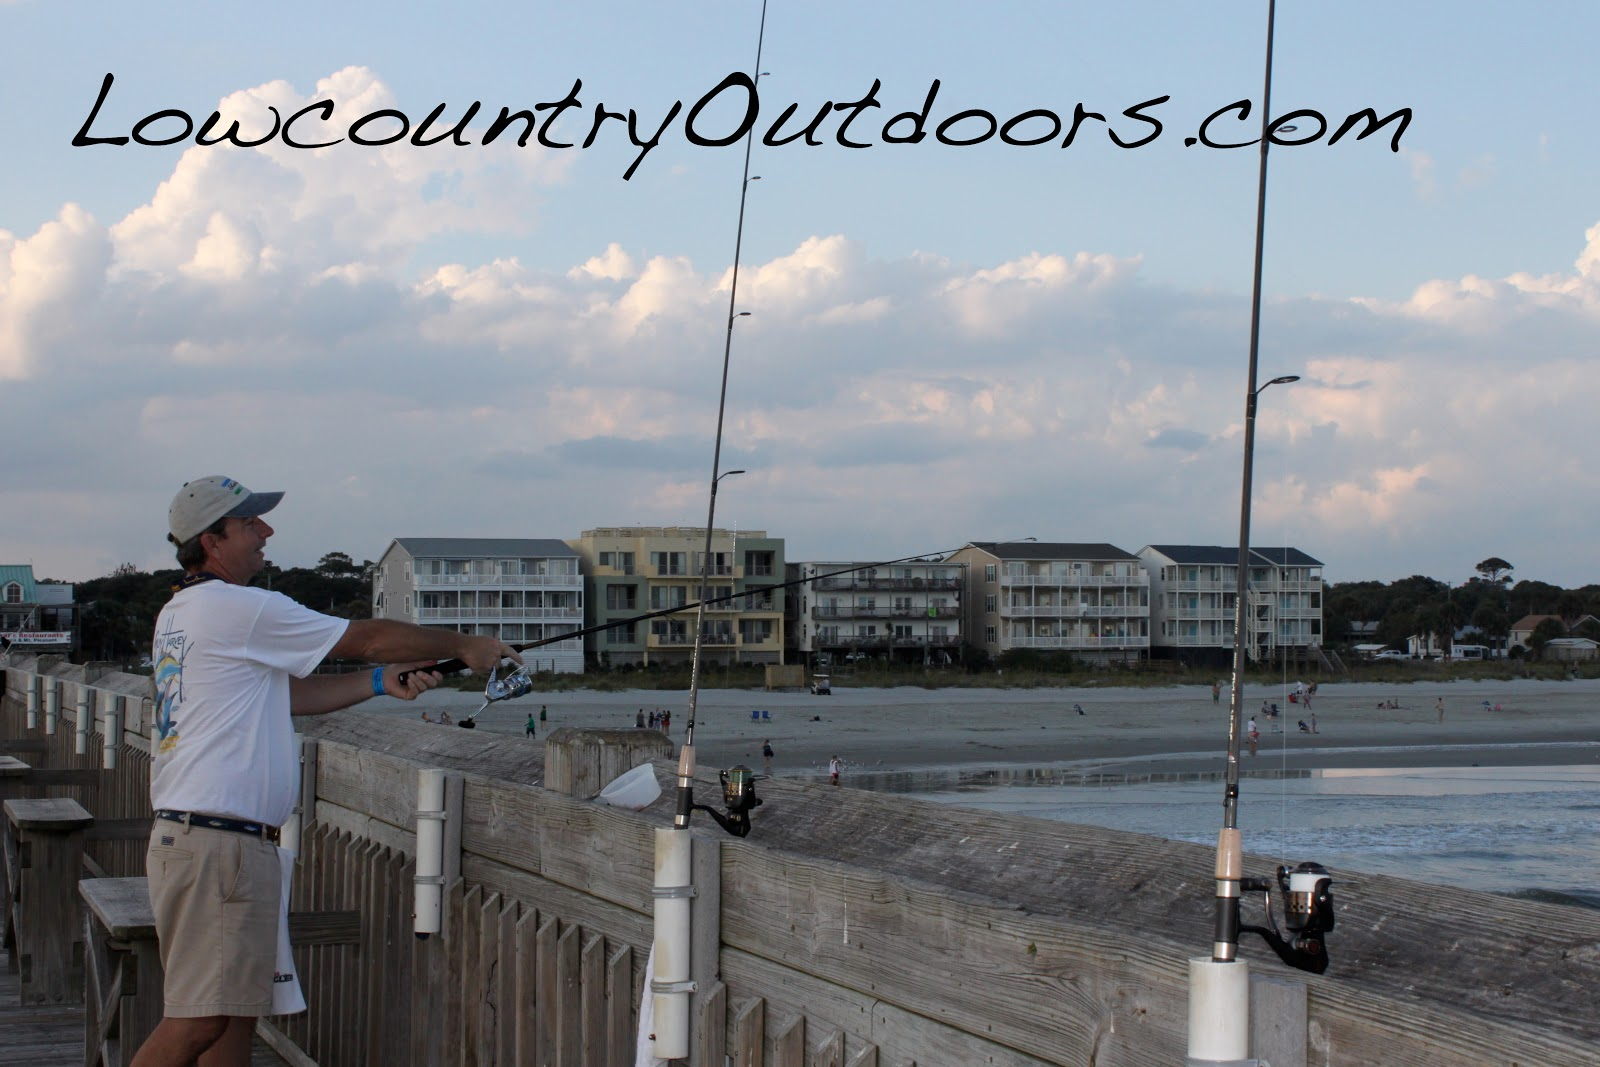 Lowcountry outdoors all star team ast fishing rods for Saltwater pier fishing